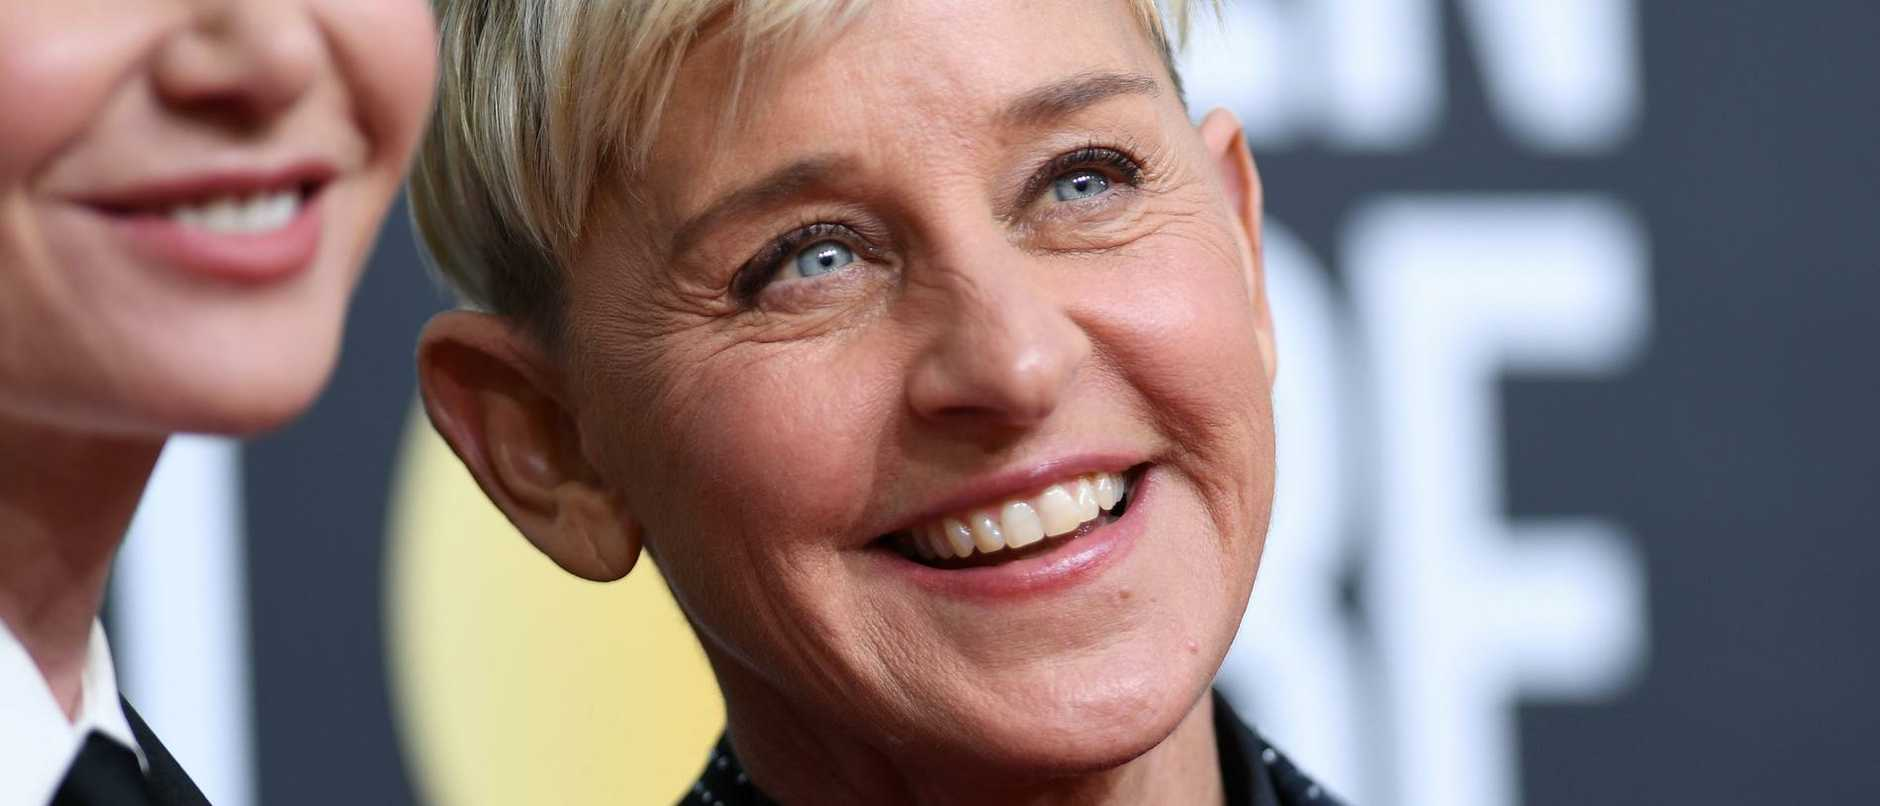 Following Ellen DeGeneres' shock announcement she has coronavirus, the talk show host has taken to Twitter to share an unlikely symptom.